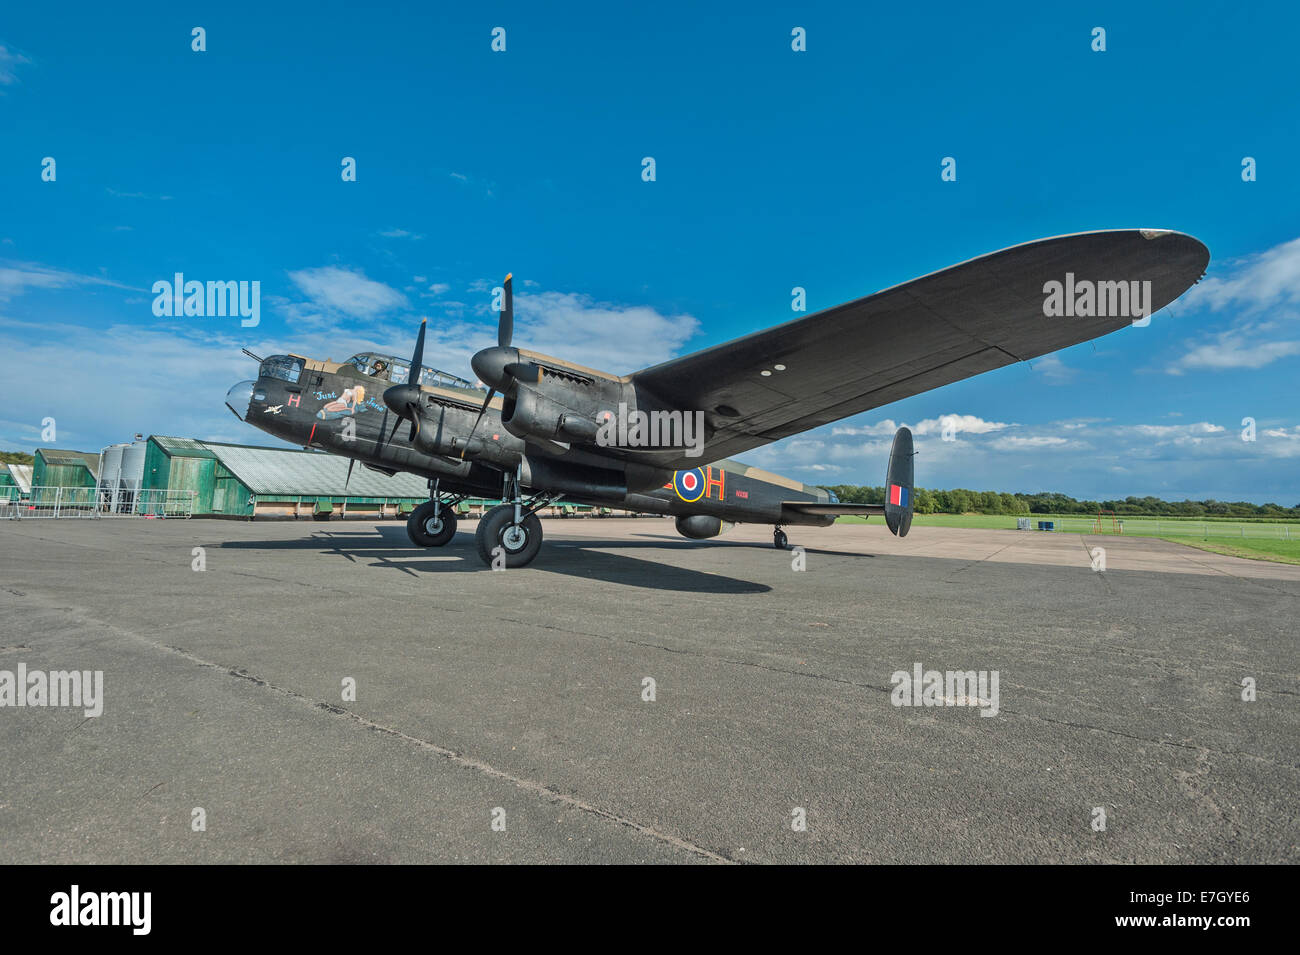 A restored Lancaster bomber 'Just Jane' taxiing at East Kirkby airfield, Lincolnshire. Space for text in - Stock Image